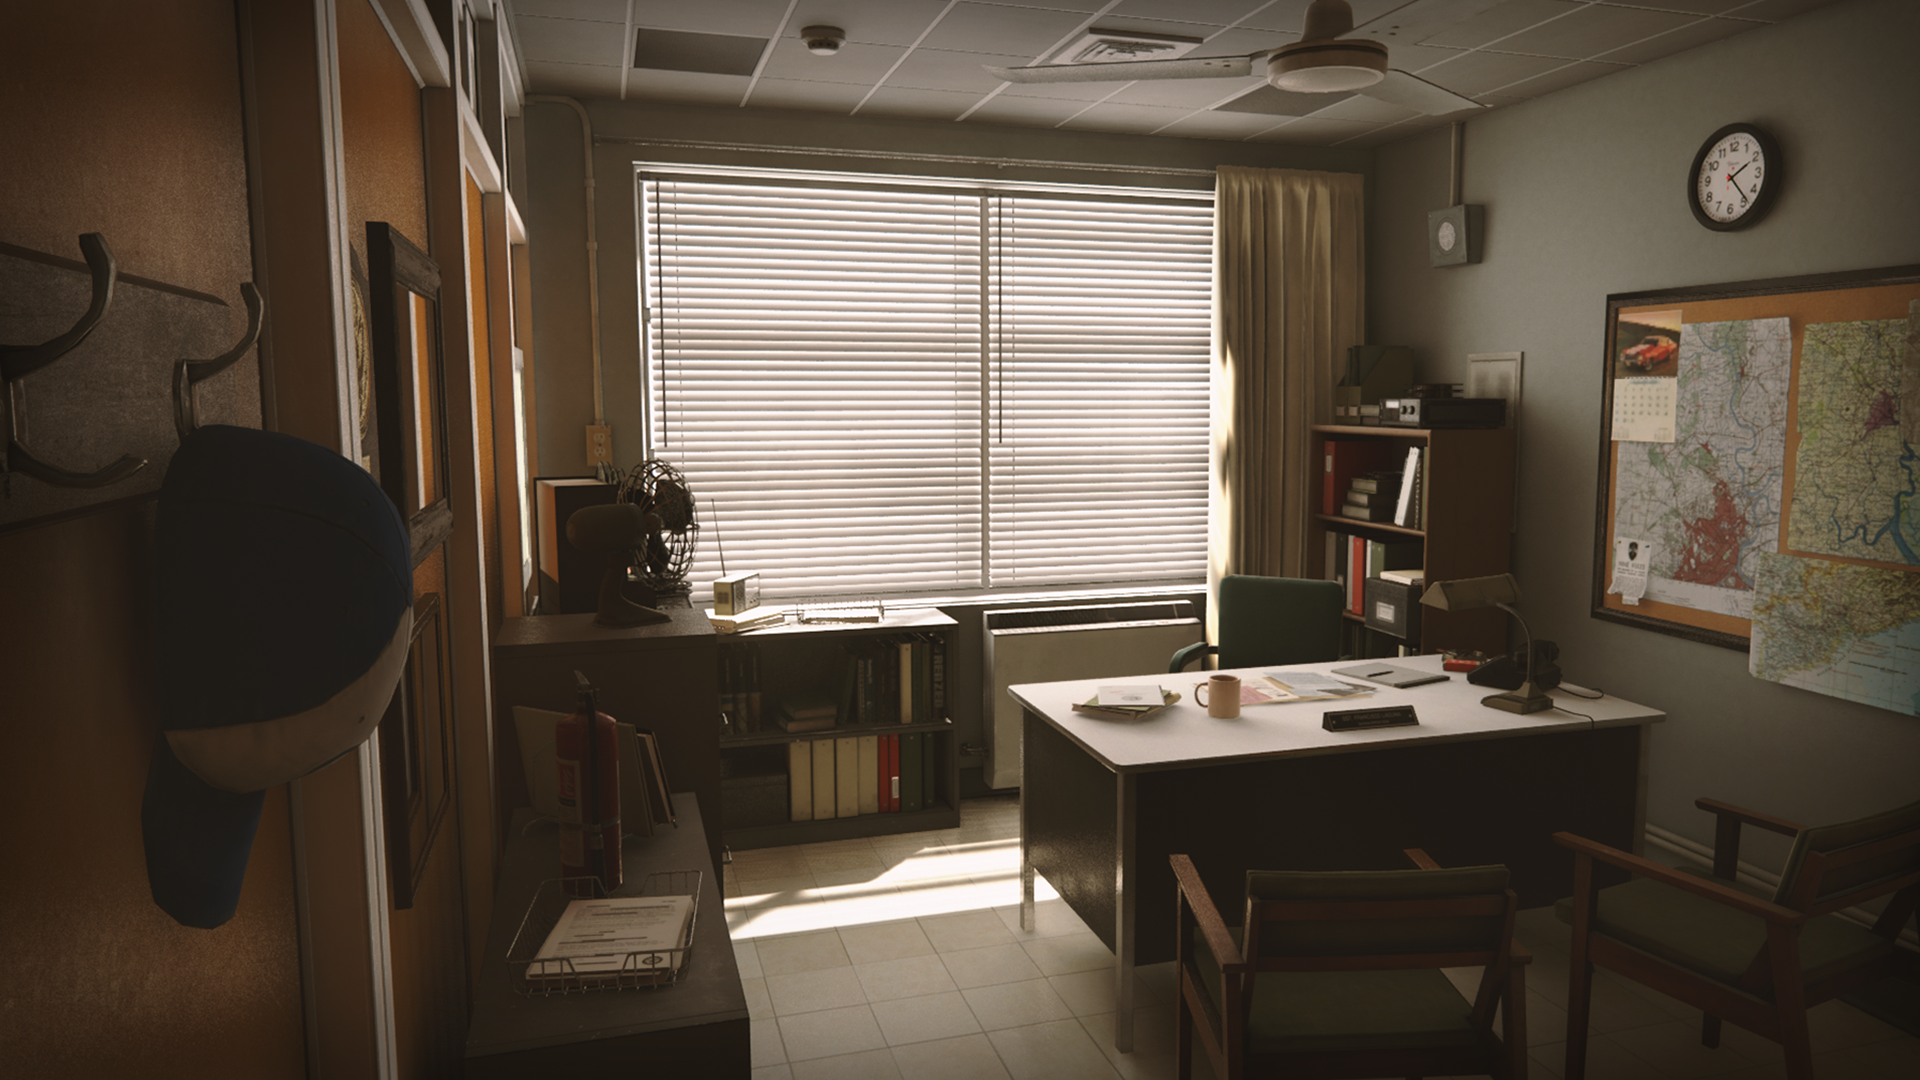 Retro Office Environment by Clinton Crumpler